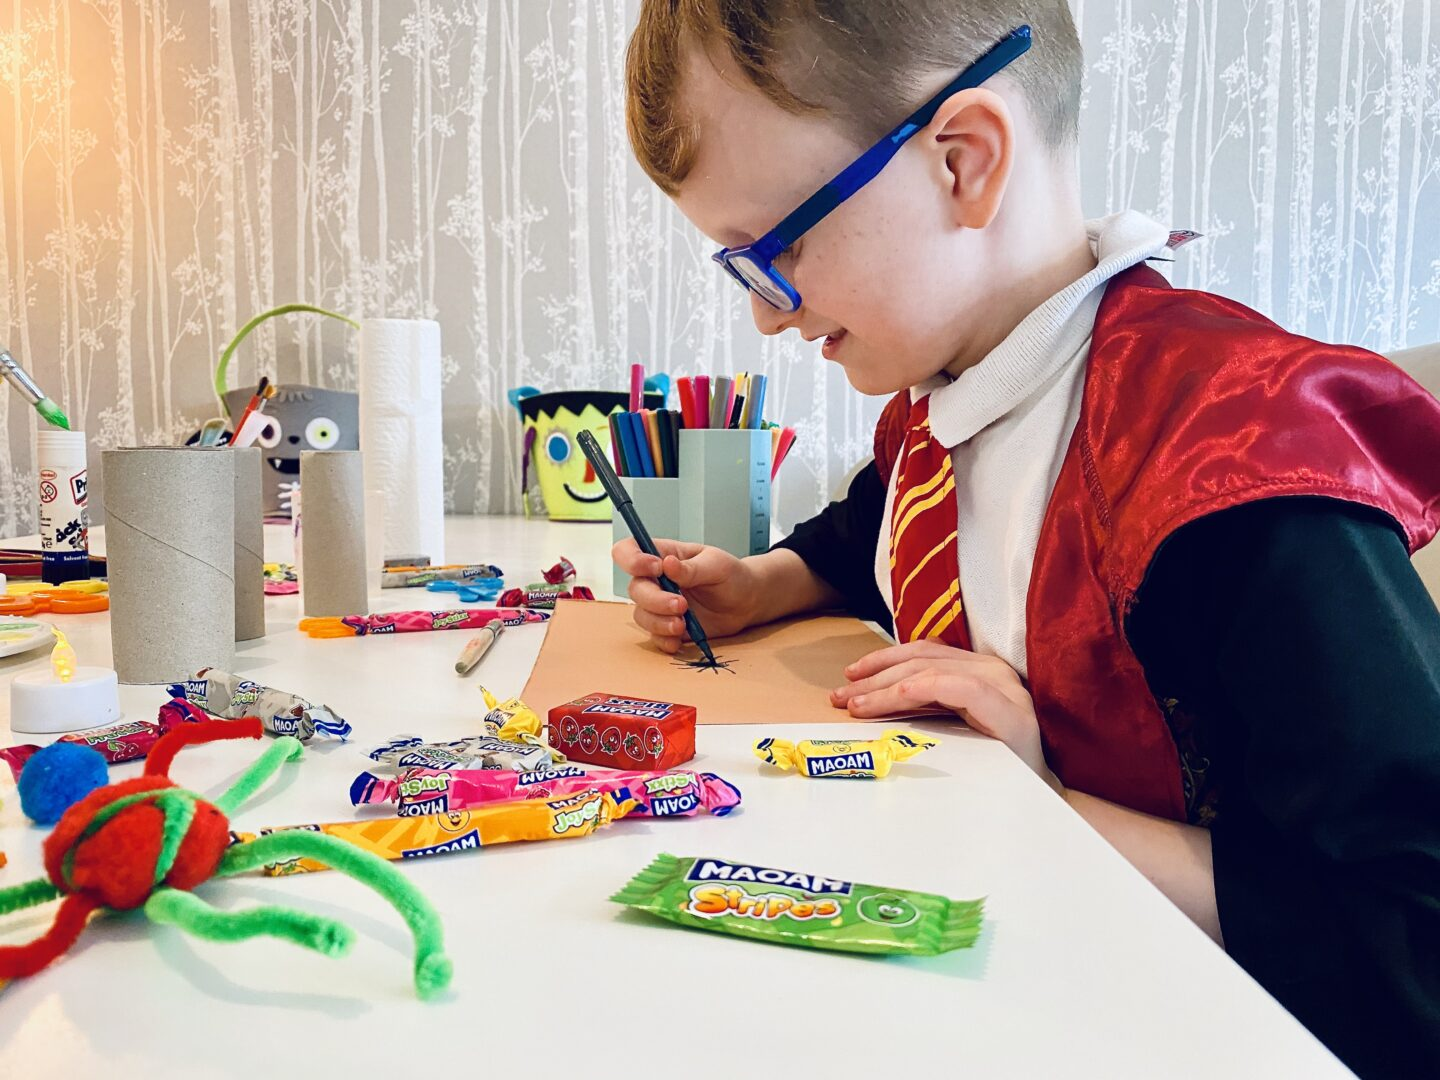 A boy dressed as Harry Potter doing Halloween crafts